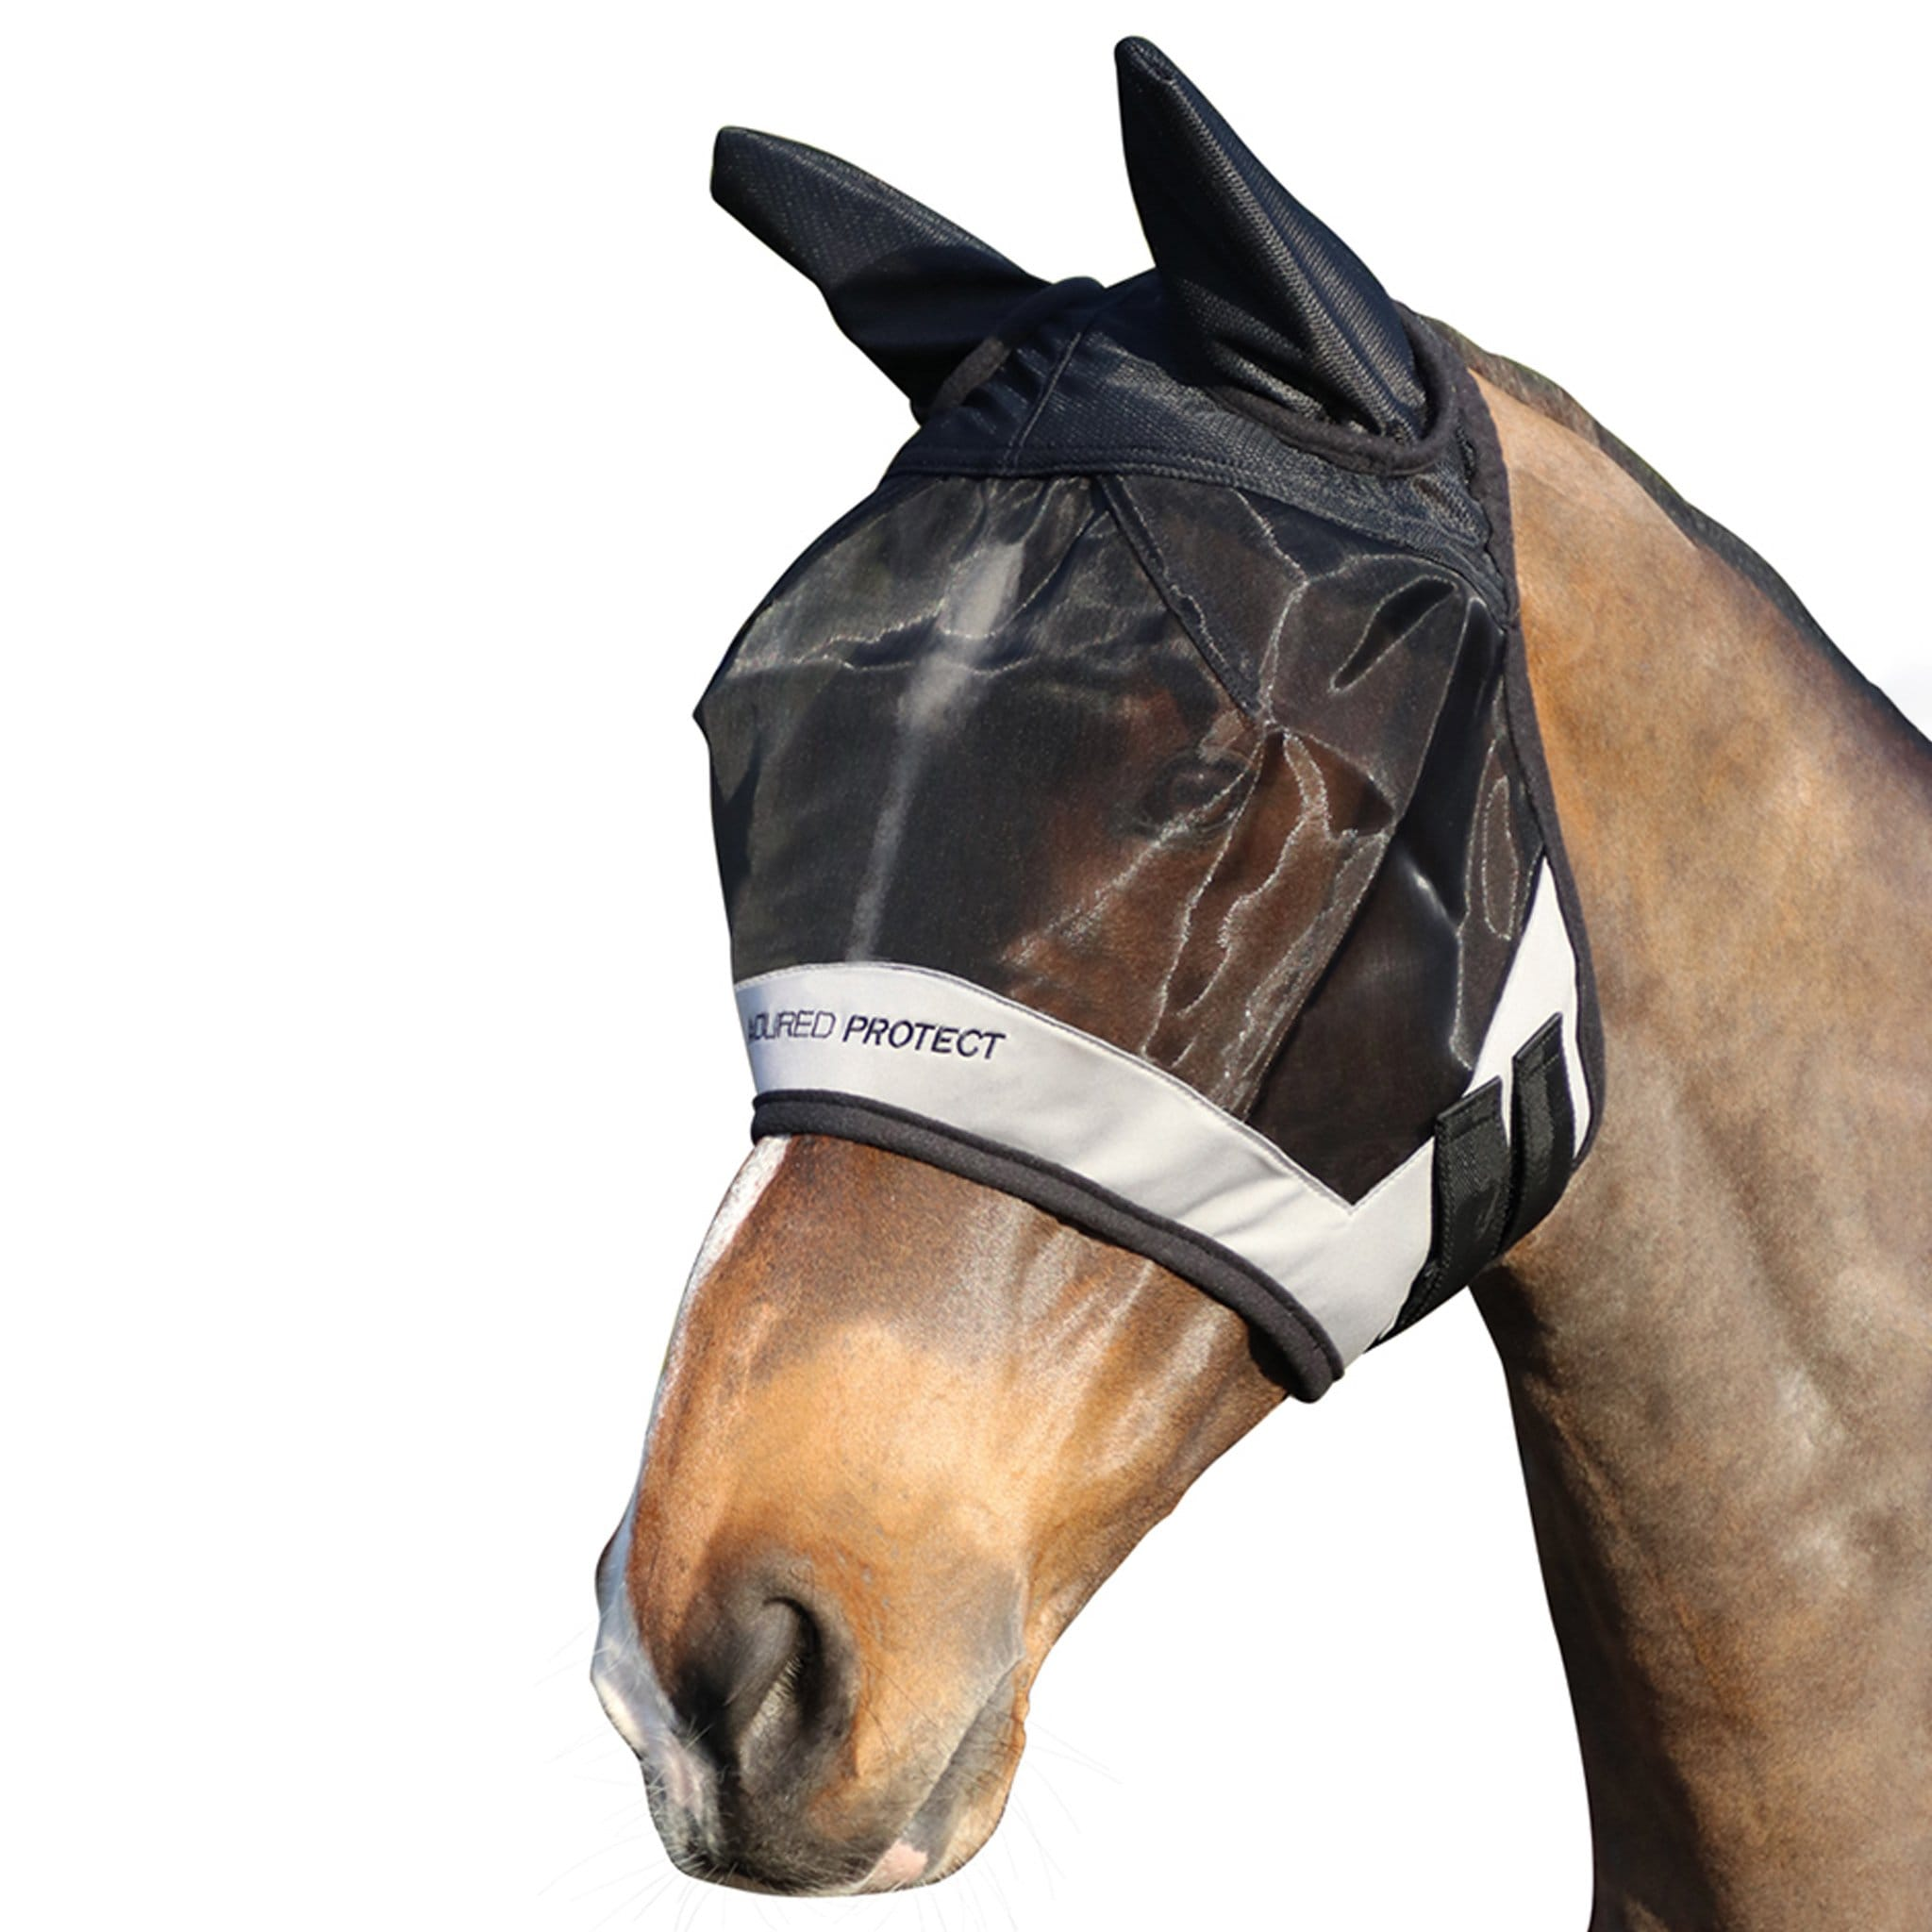 Hy Armoured Protect Half Fly Mask With Ears Black and Grey 26988